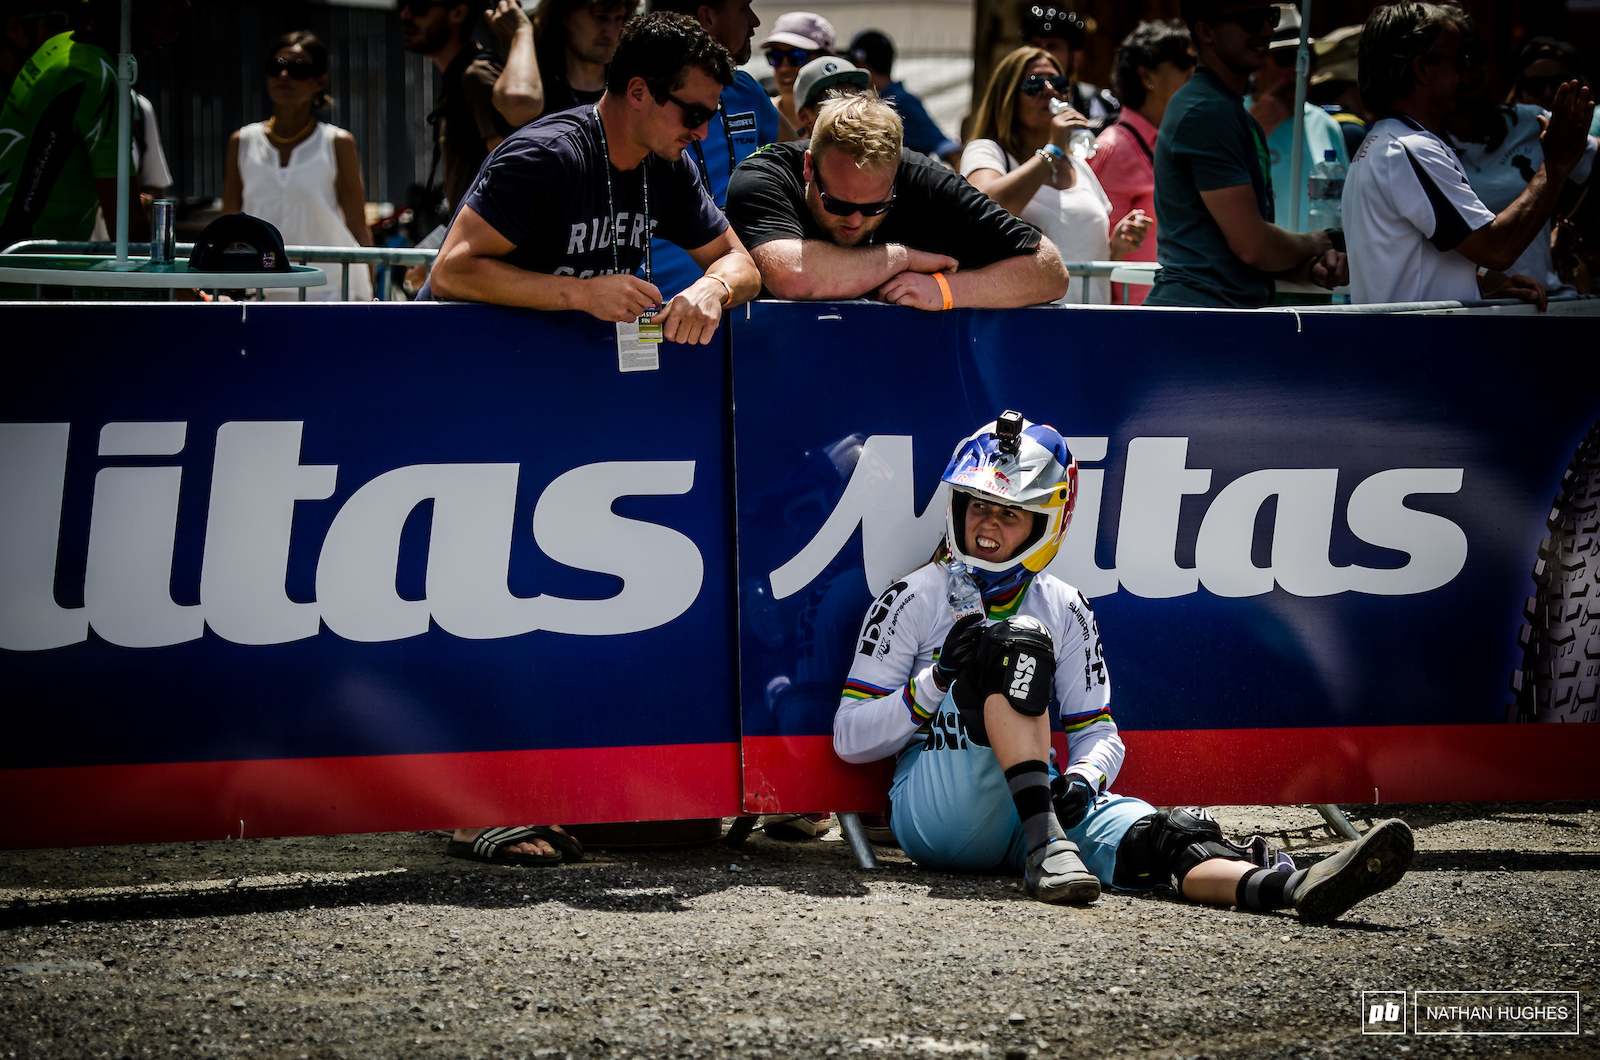 Atherton feeling beat at the end of her working day at Lenzerheide after coming in 2nd to Nicole.